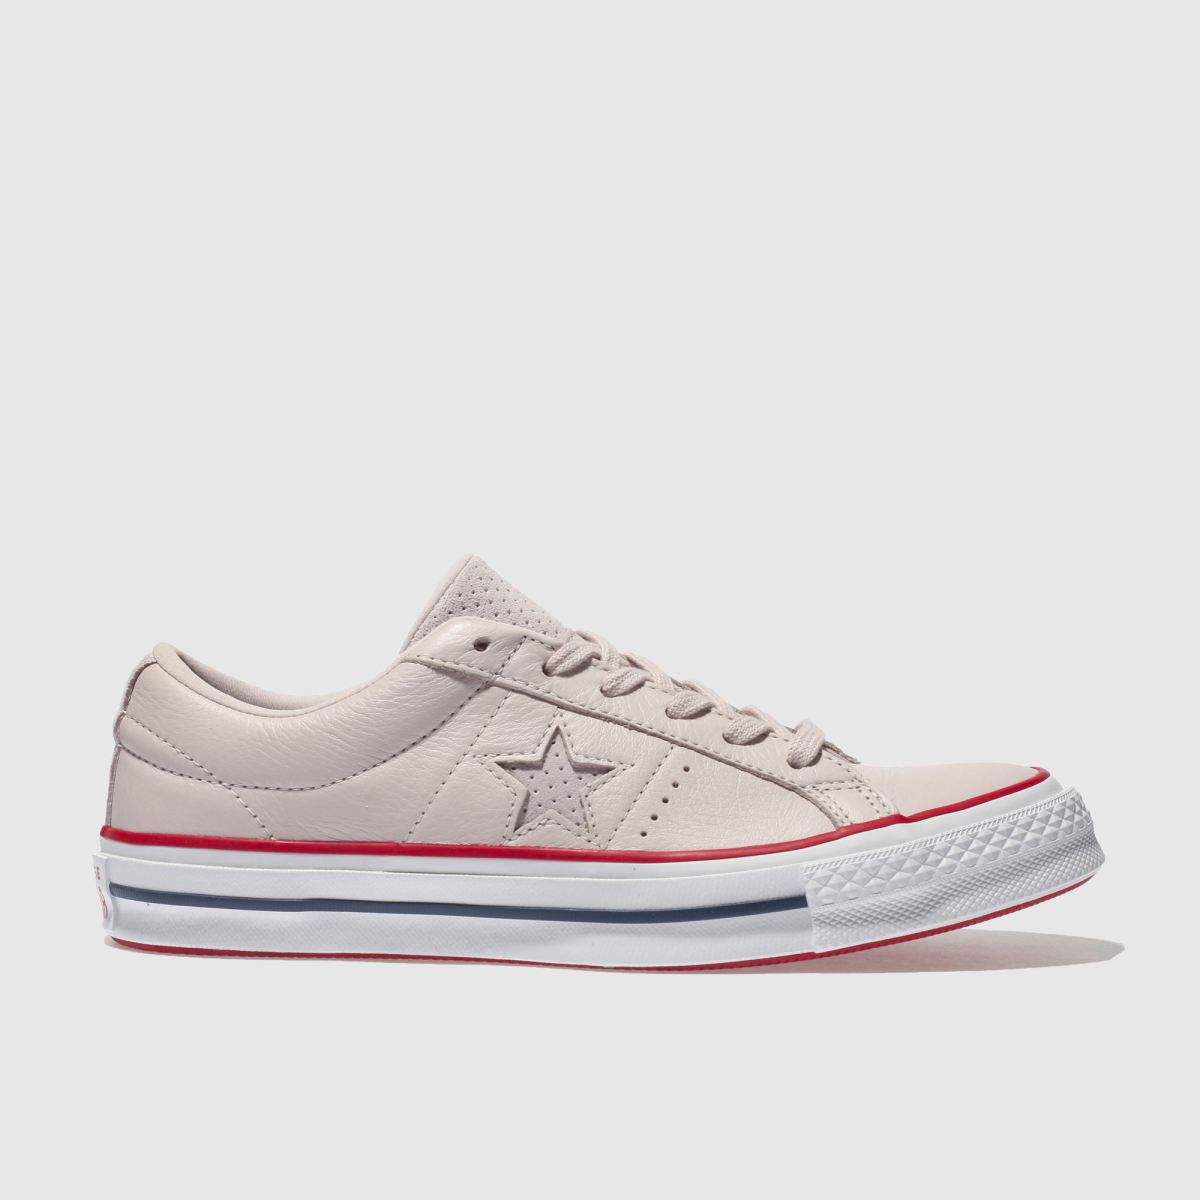 Converse Pale Pink One Star Leather Ox Trainers